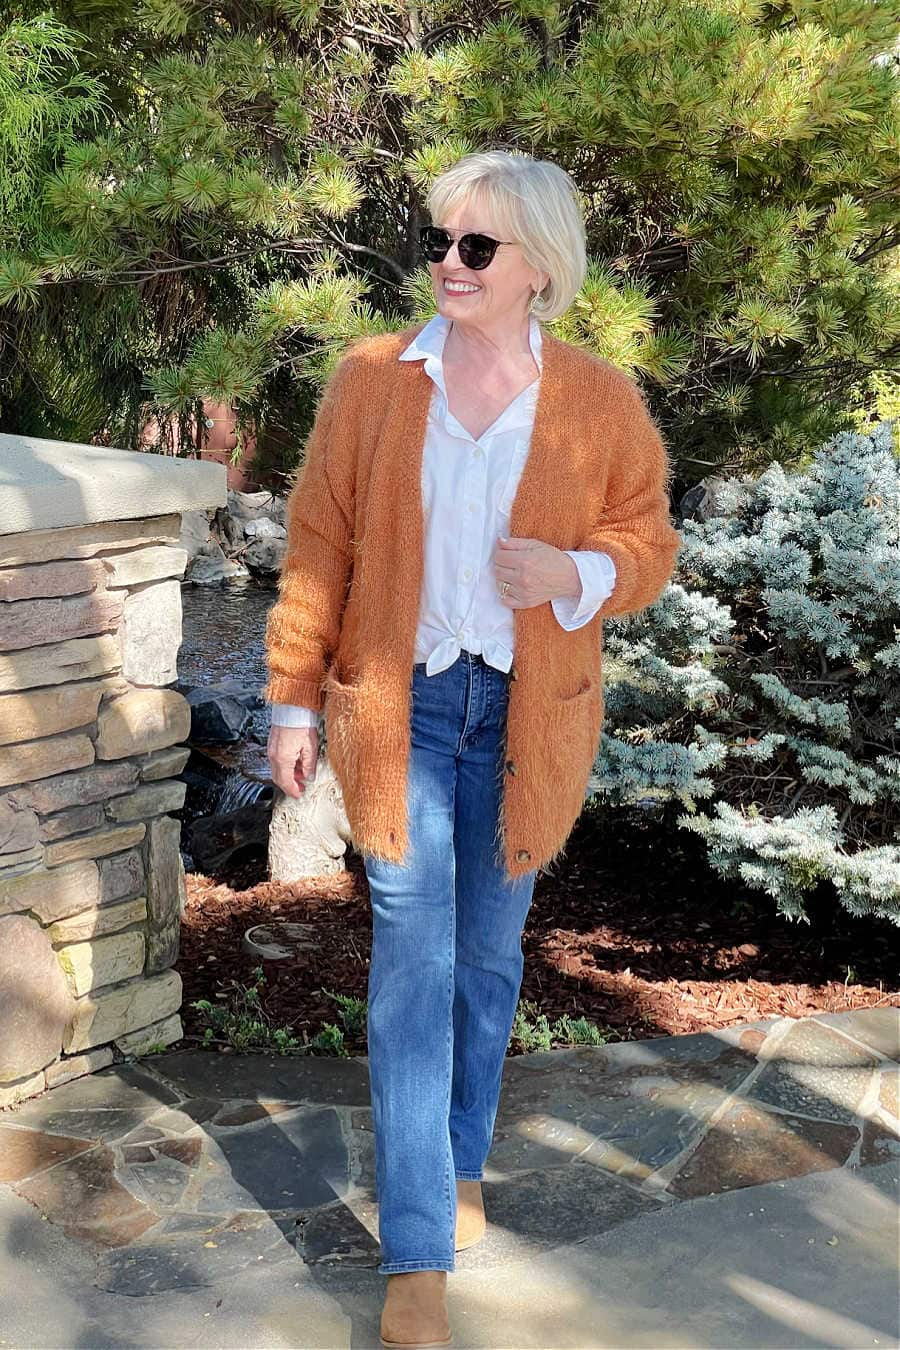 orange cardigamn with blue jeans and chelsea boots on blonde woman